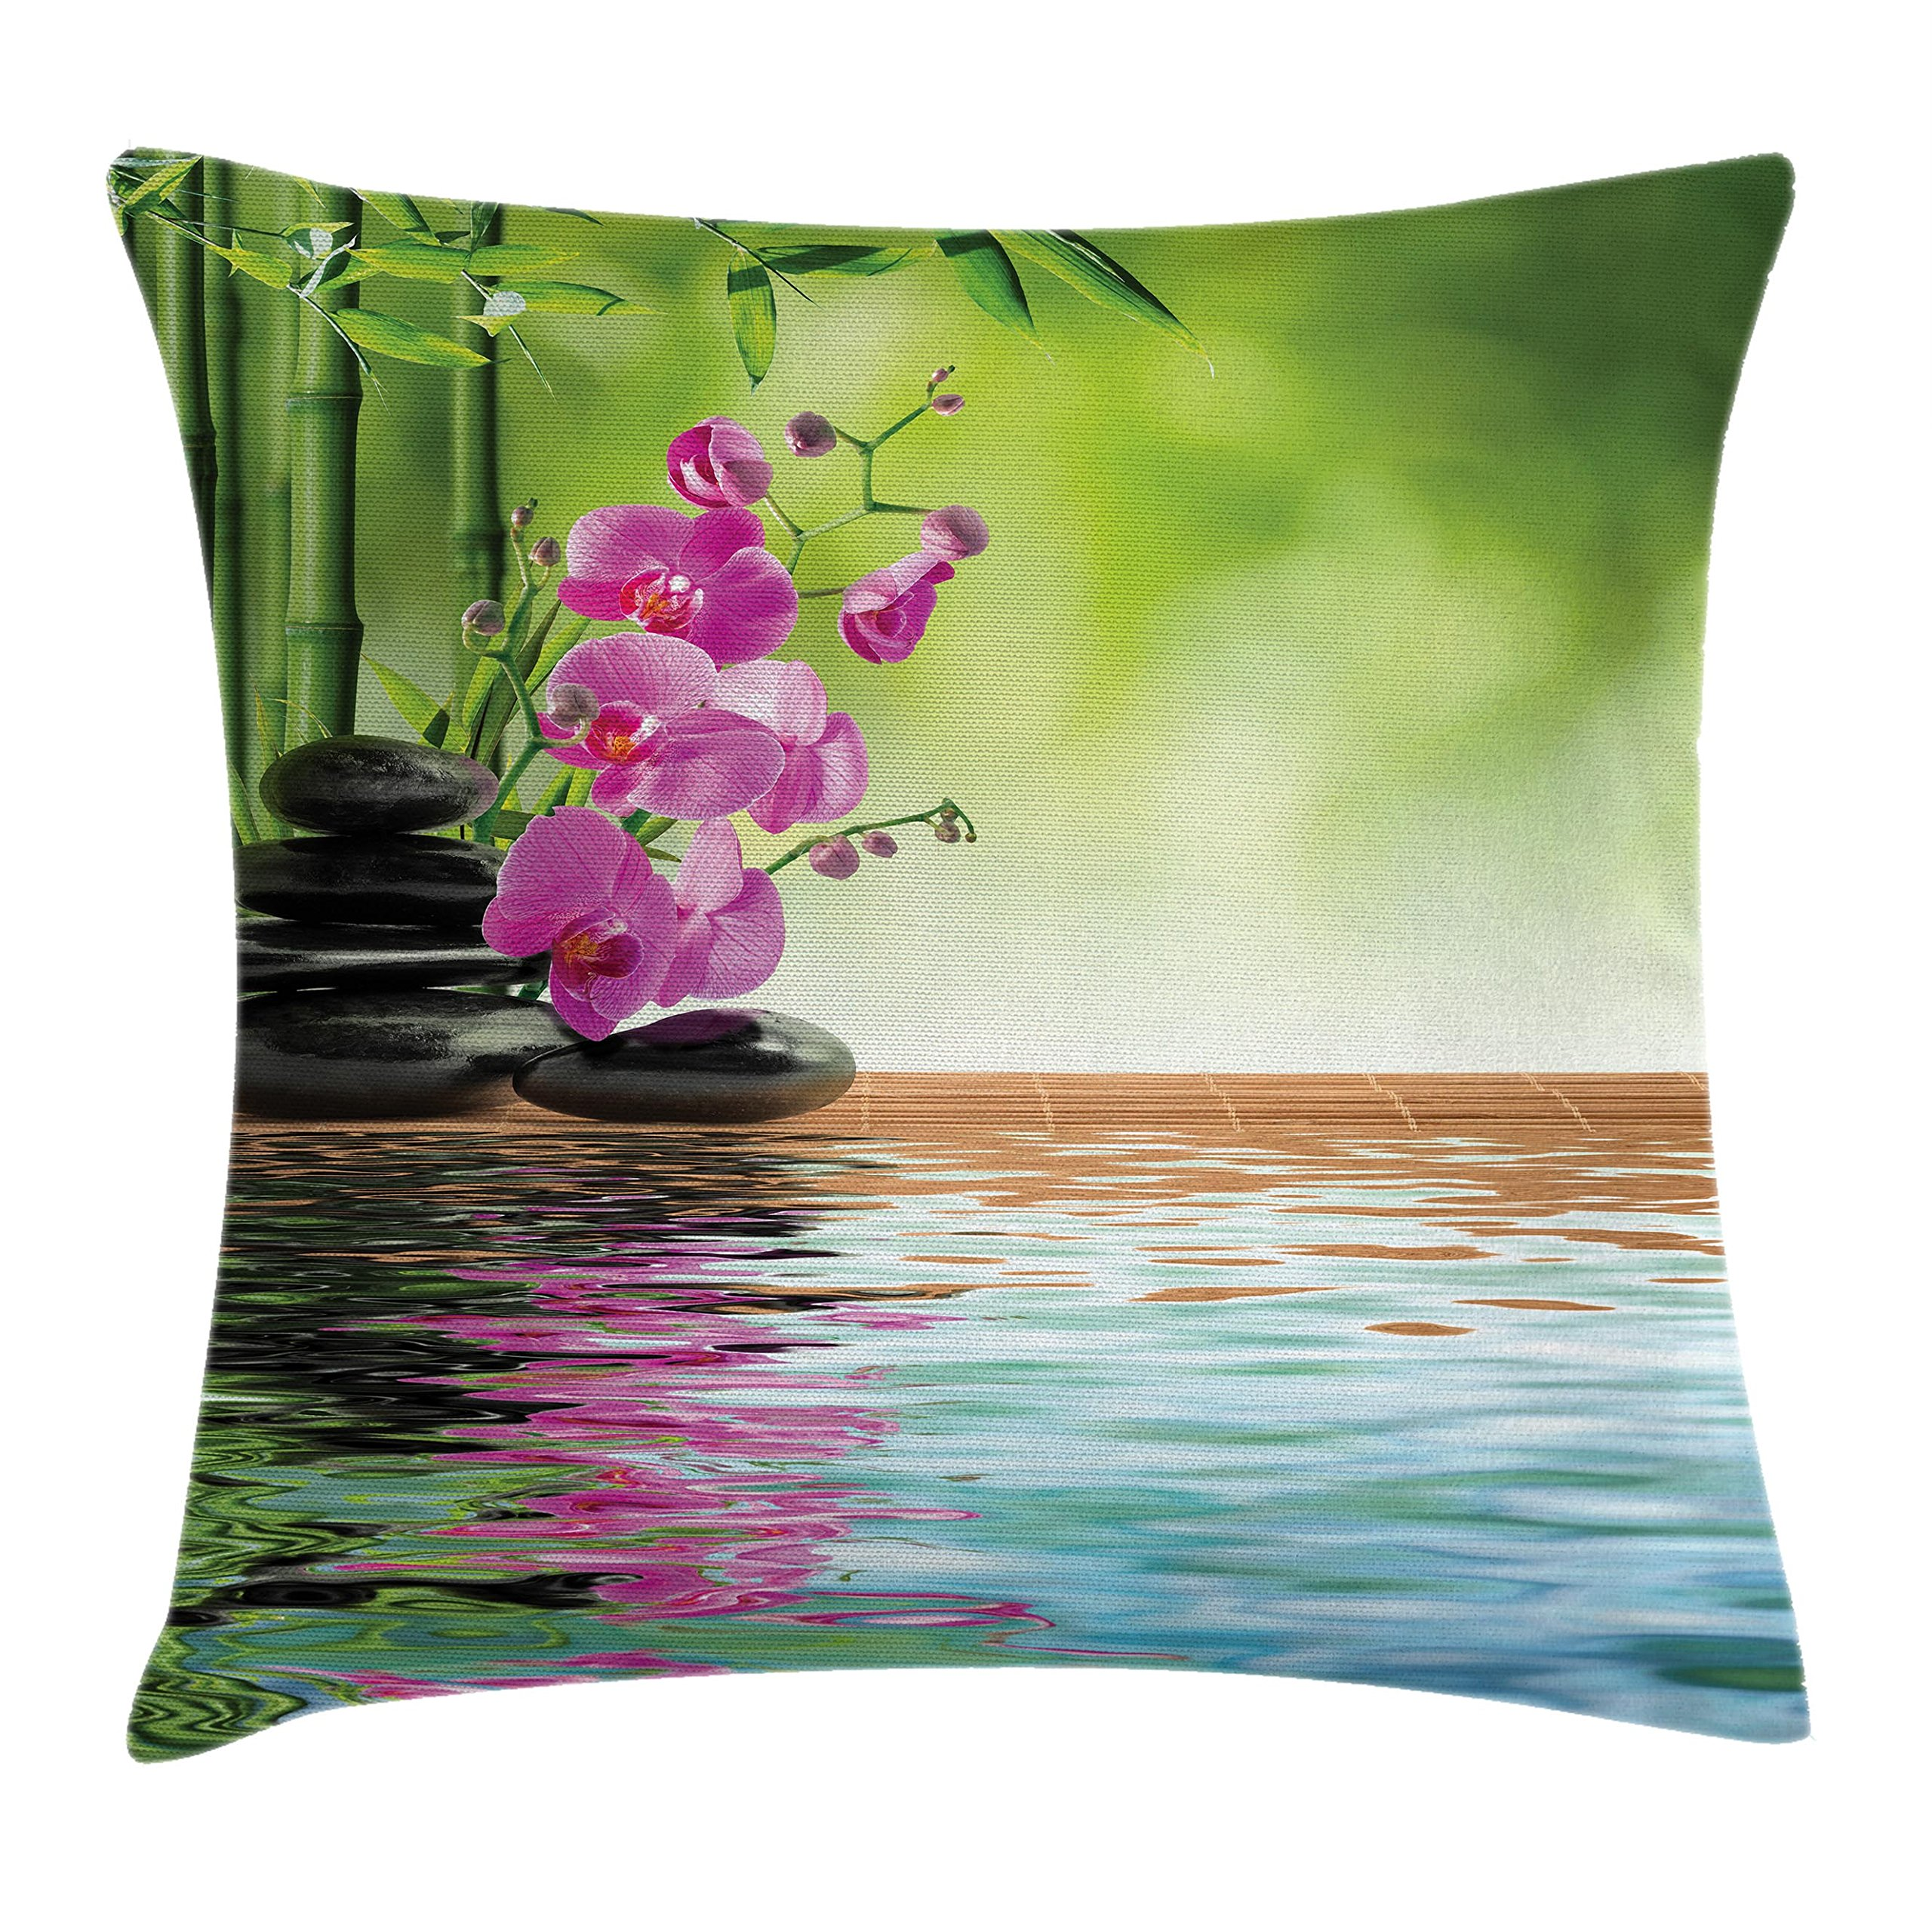 Ambesonne Spa Decor Throw Pillow Cushion Cover, Orchid Flower Stone Oriental Culture Spirituality Wellness Tropical Holiday, Decorative Square Accent Pillow Case, 20 X 20 inches, Green and Purple